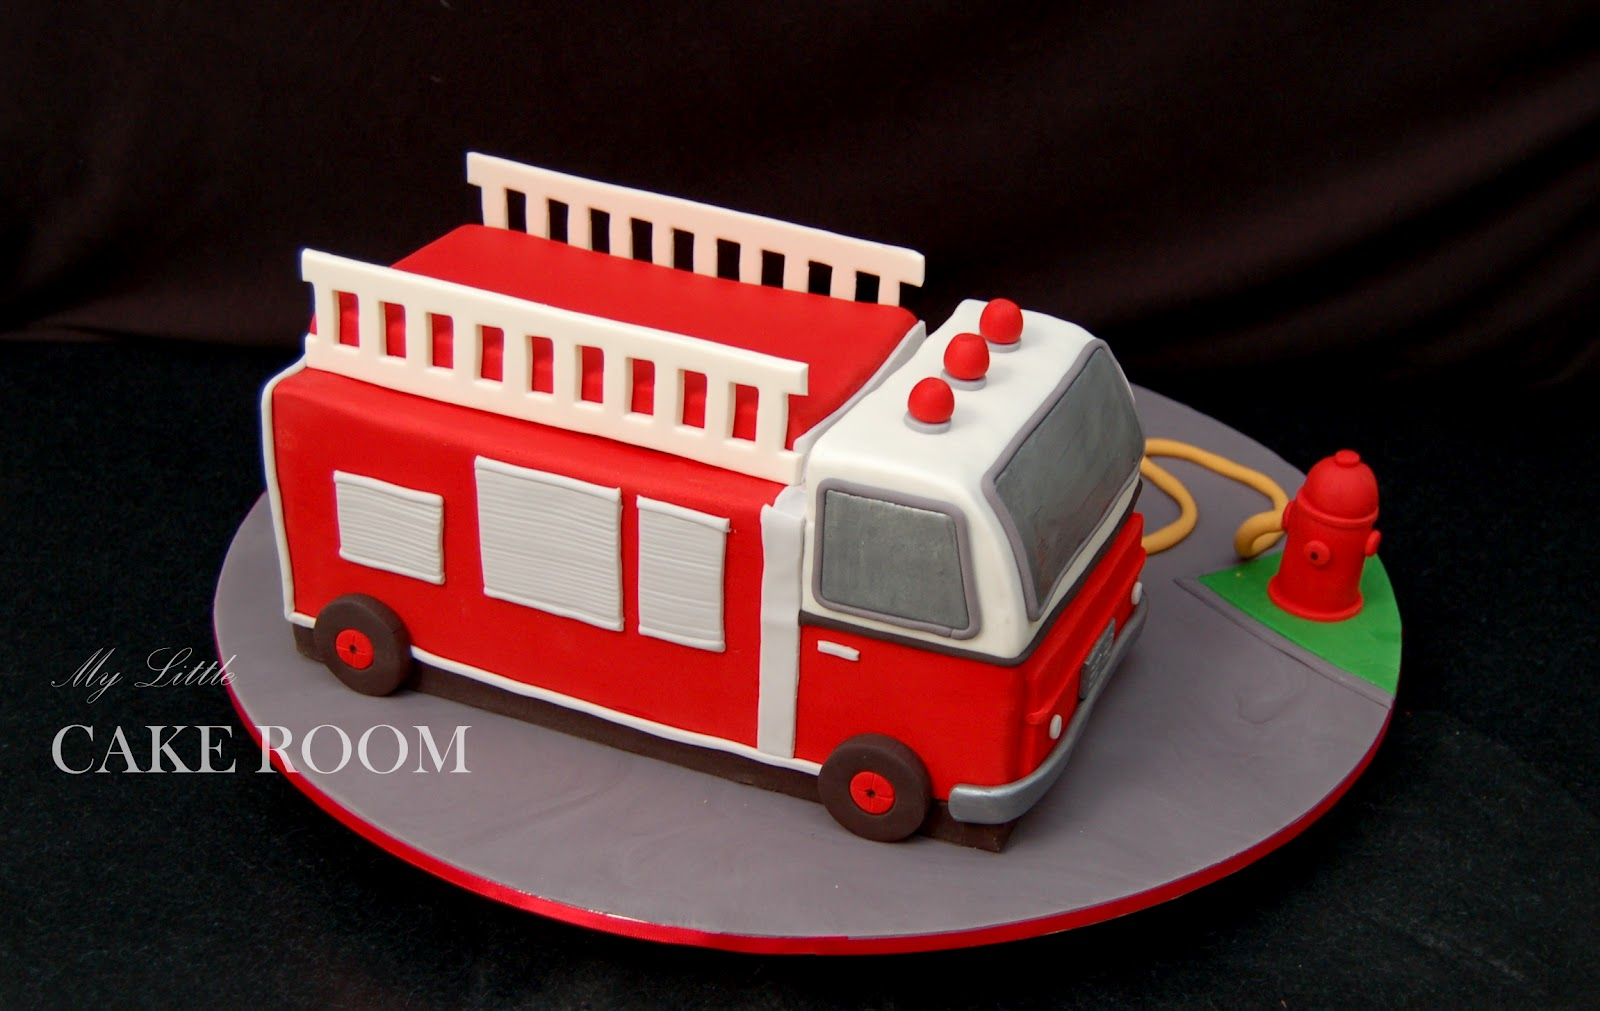 Fire Truck Cake Design : My Little Cake Room